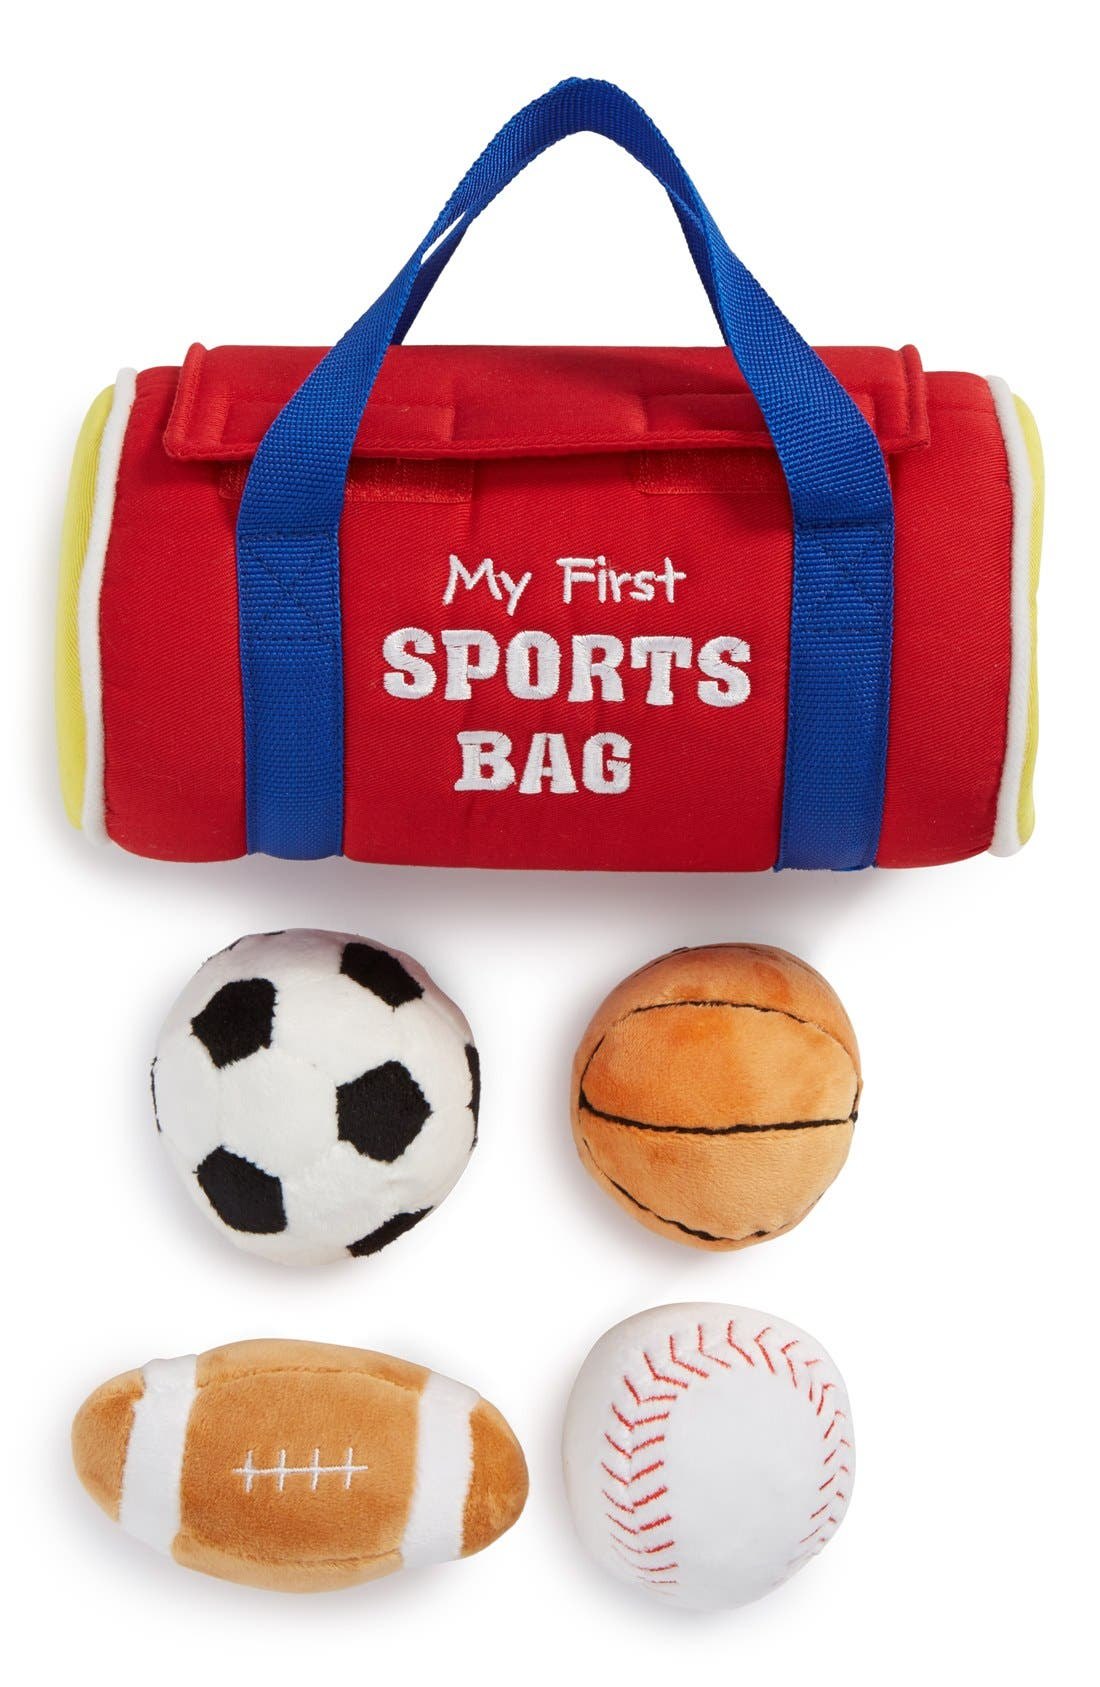 Baby Gund 'My First Sports Bag' Play Set,                             Main thumbnail 1, color,                             RED